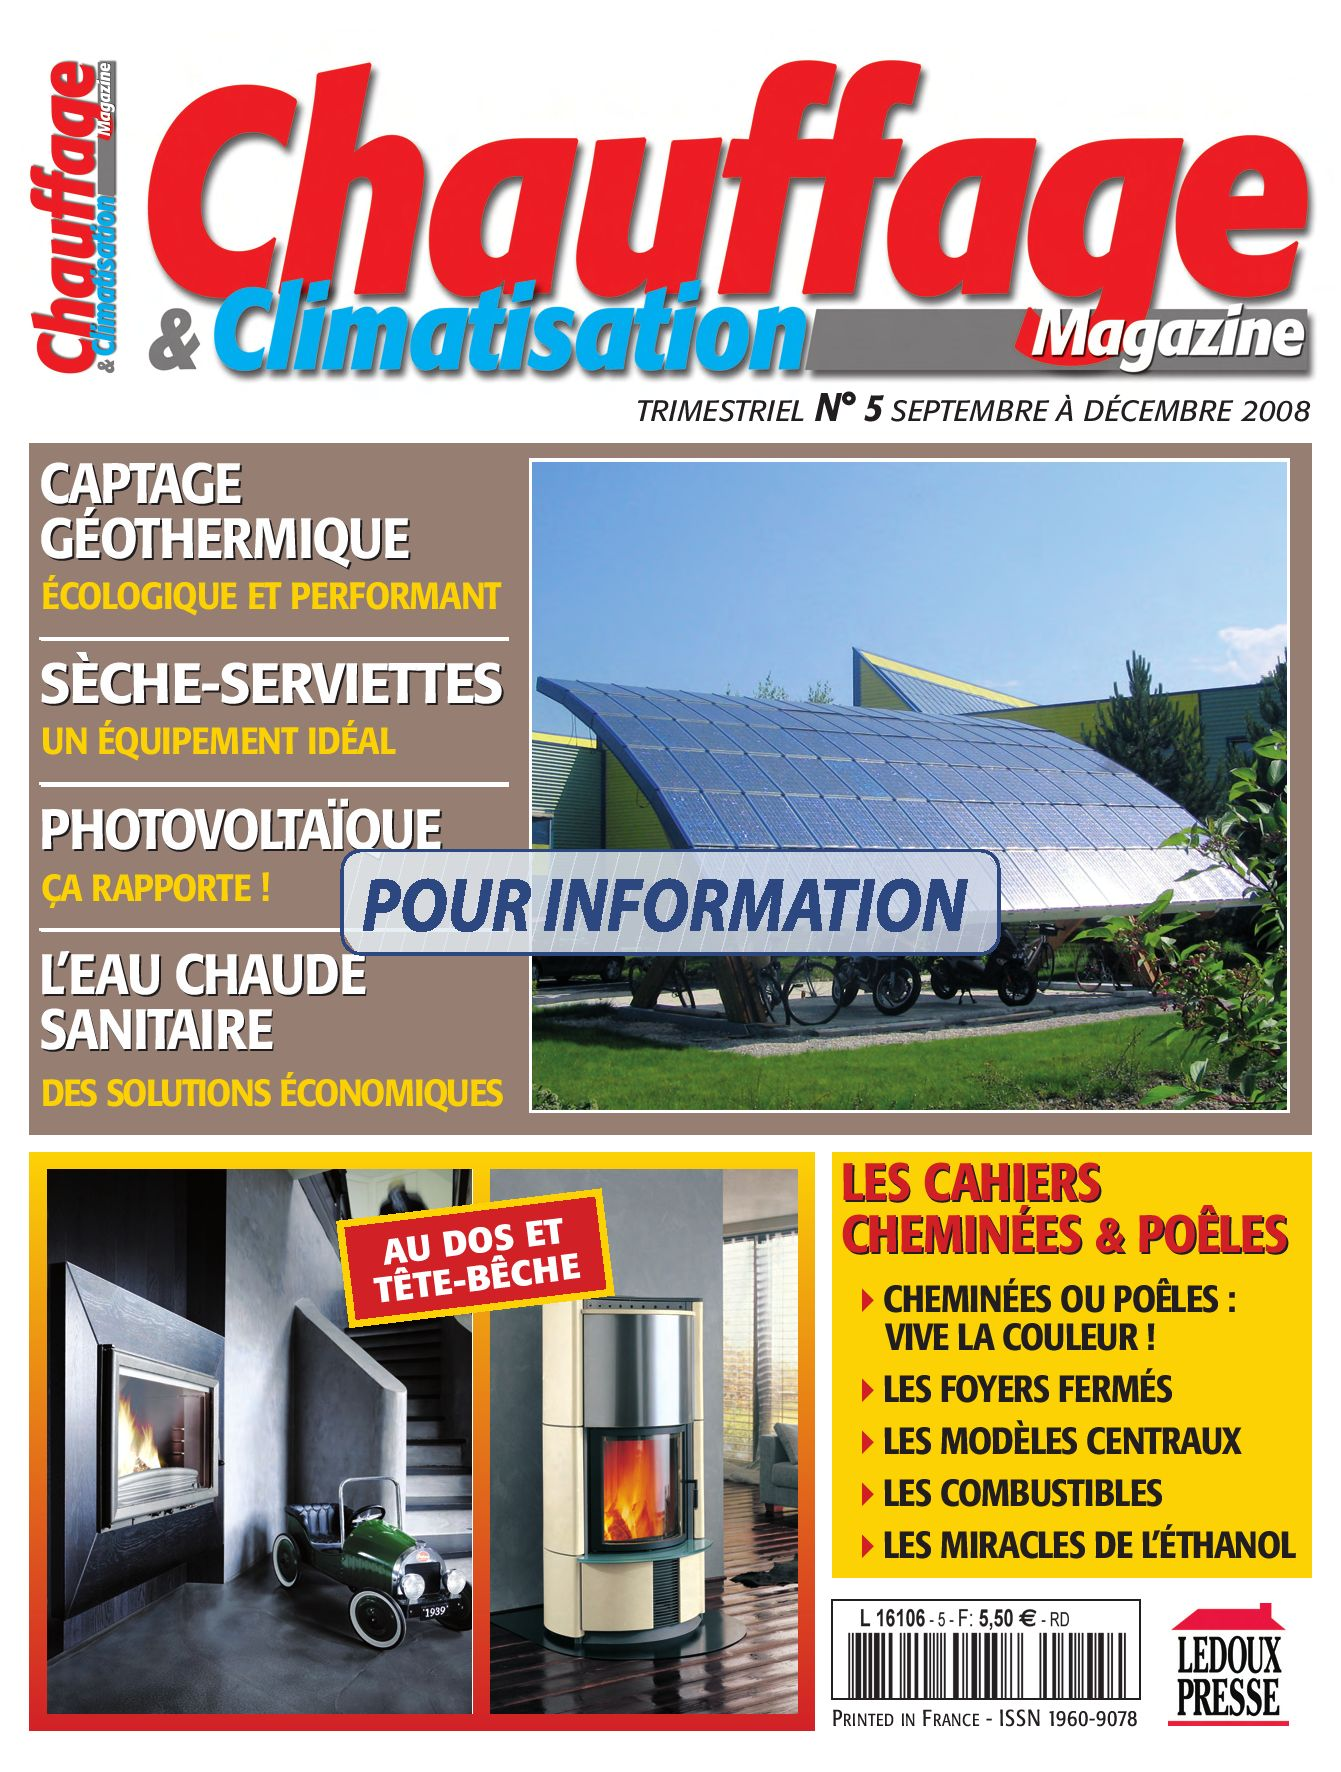 Cheminees Philippe Royan (sarl Santones Cheminées) Médis Chauffage Climatisation Magazine N5 By Ledoux Christian Issuu